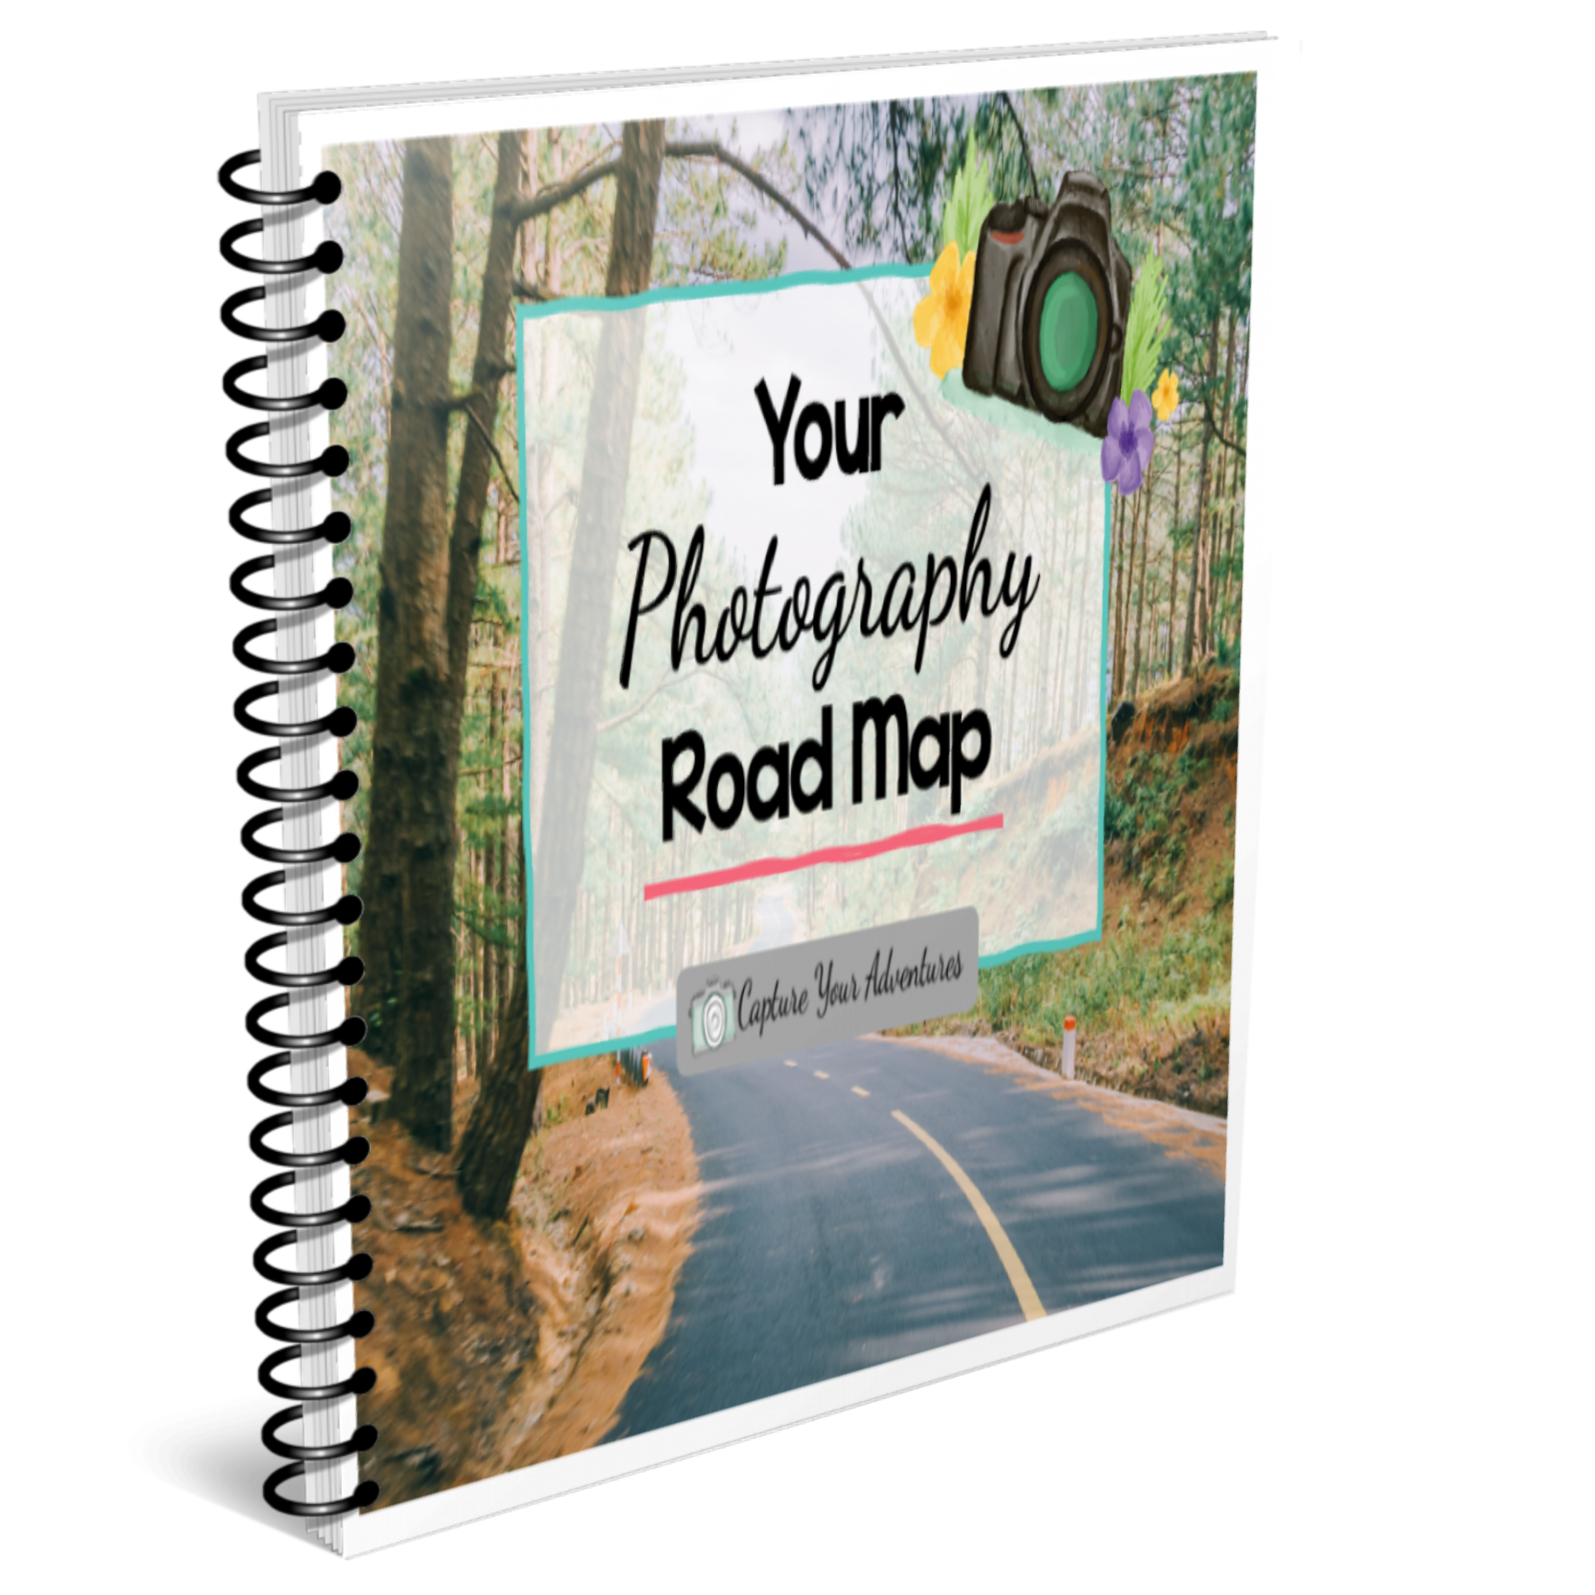 Your Photography Road Map